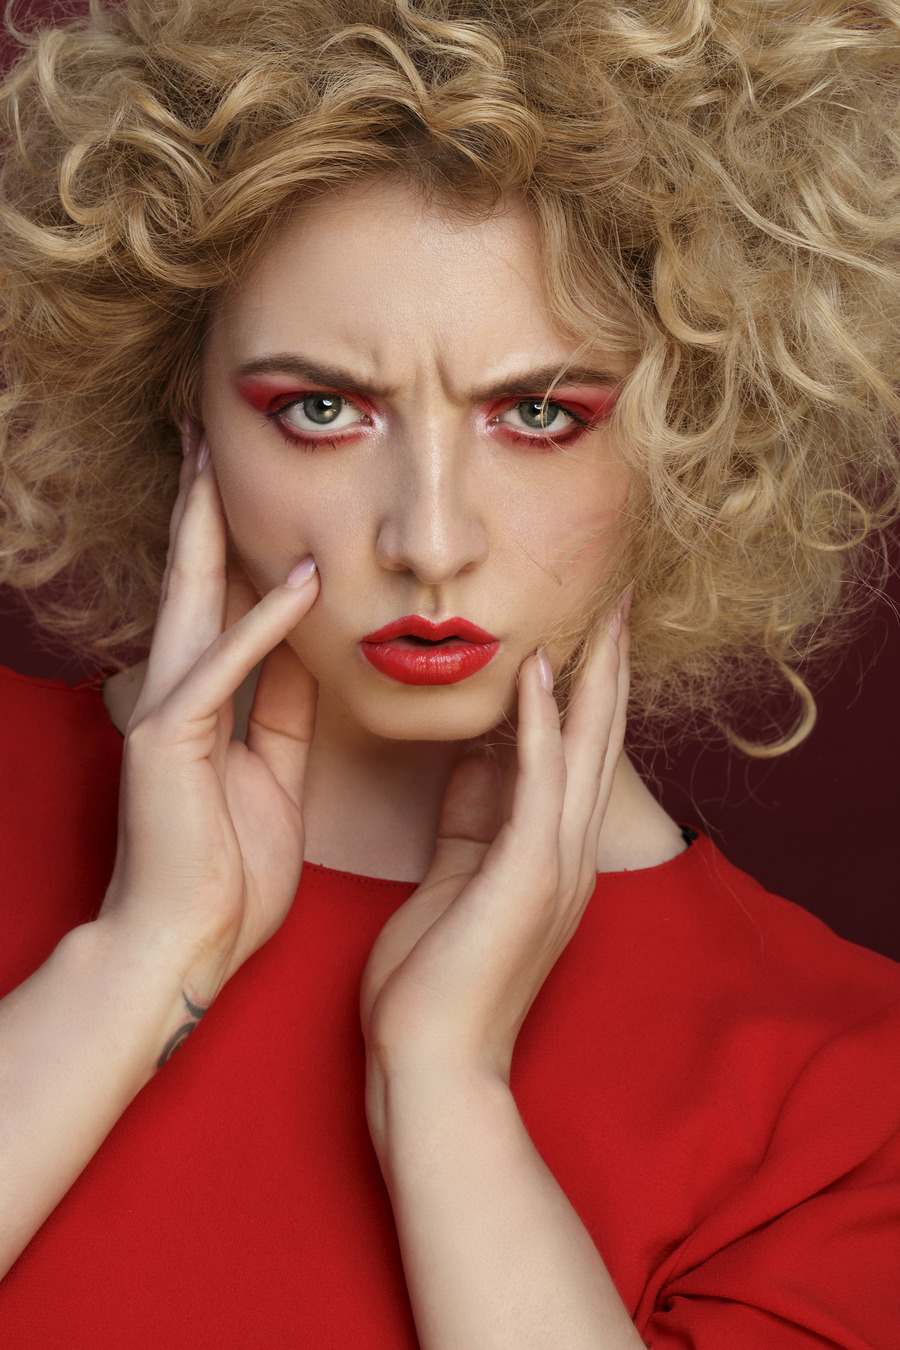 The Fashion Frown / Photography by Iulia David, Model Nicole Rayner, Makeup by Natalie Wood, Hair styling by Natalie Wood / Uploaded 2nd April 2019 @ 10:53 AM